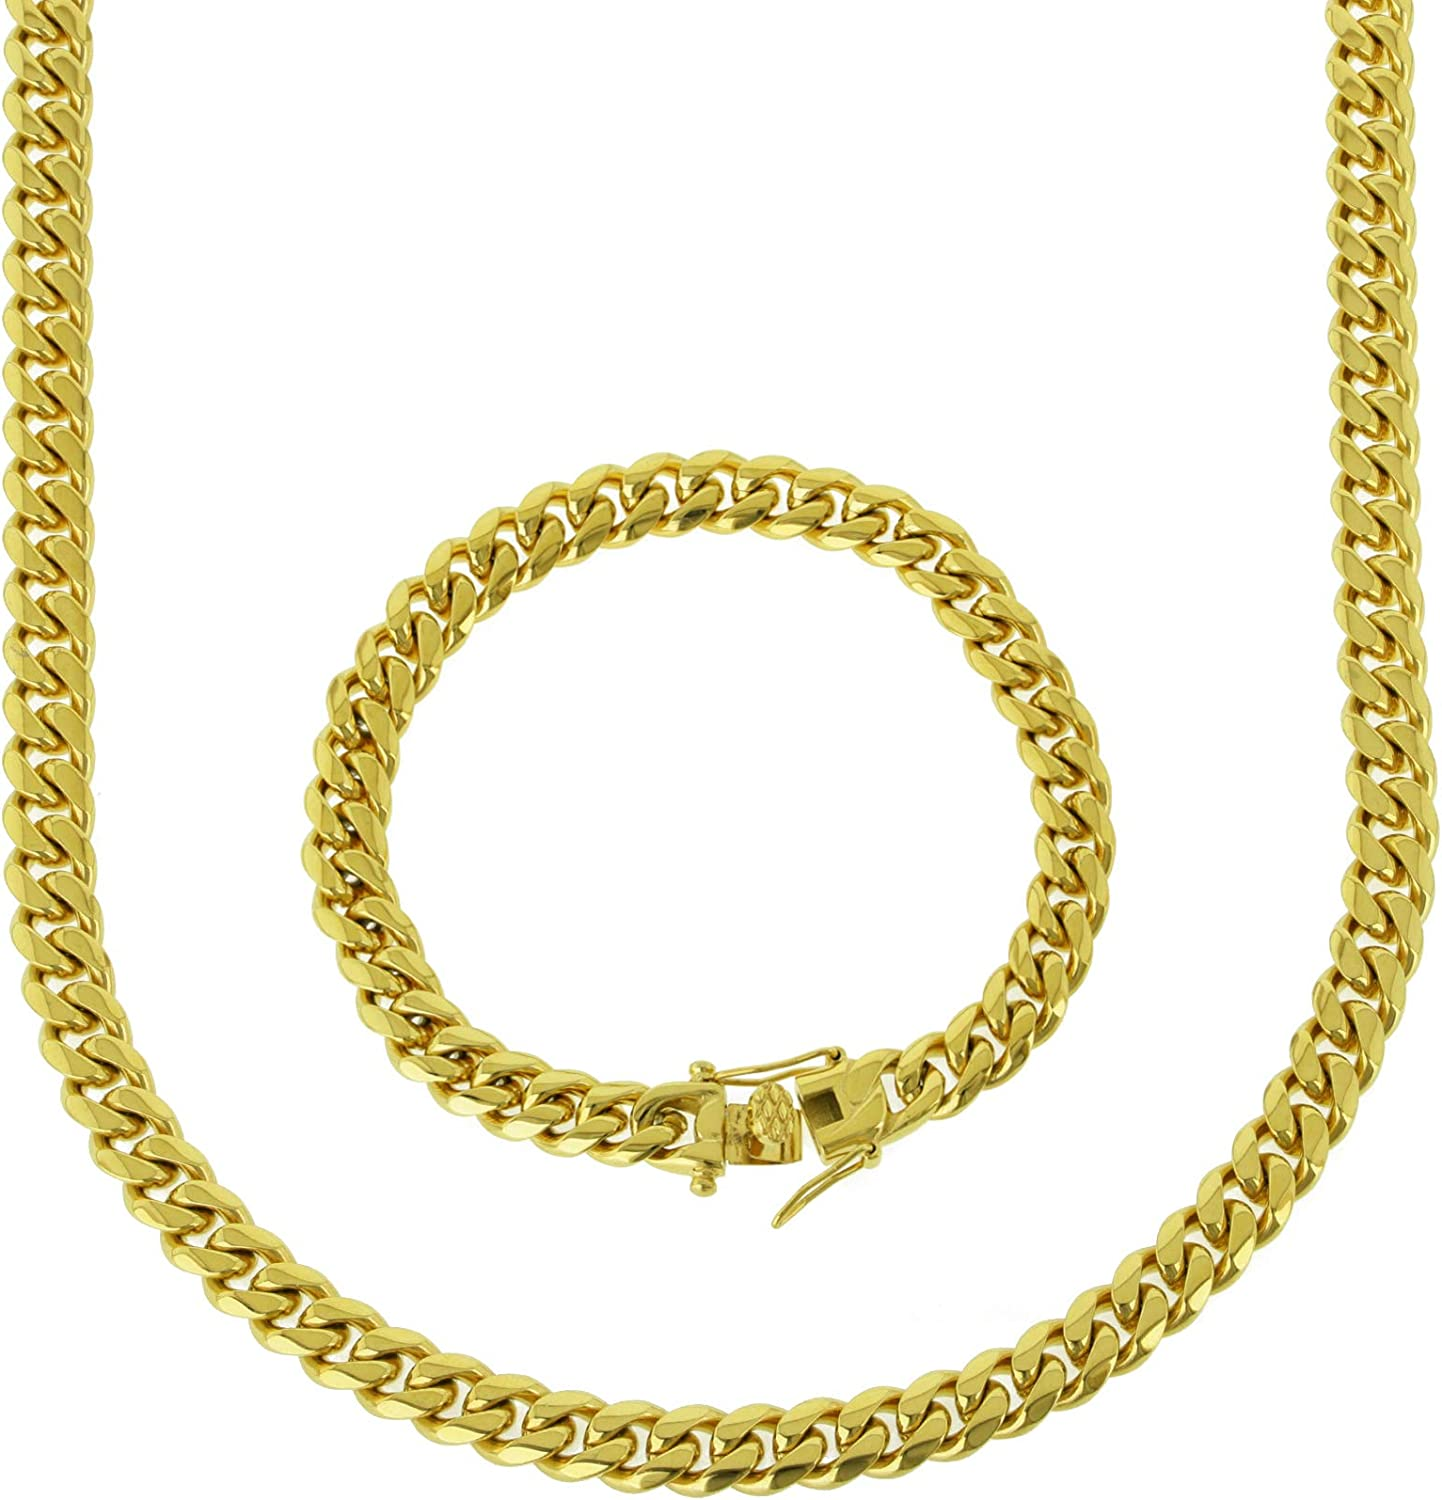 Financial sales sale ANTI-TARNISH Solid 14k Yellow Gold Th Steel favorite Stainless 8mm Finish